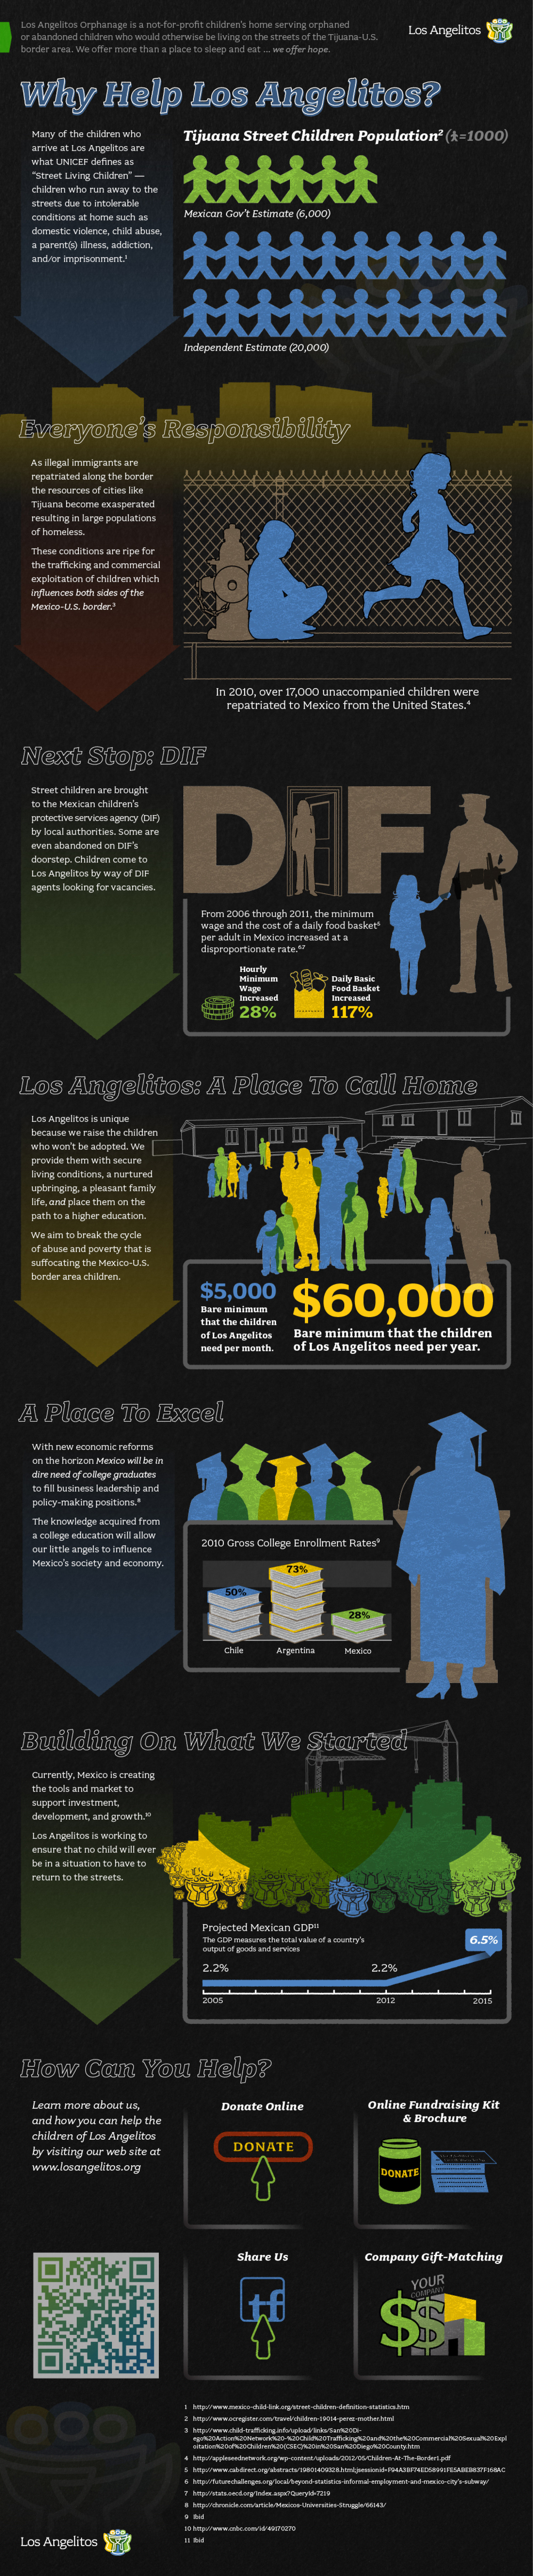 Why Help Los Angelitos? Infographic